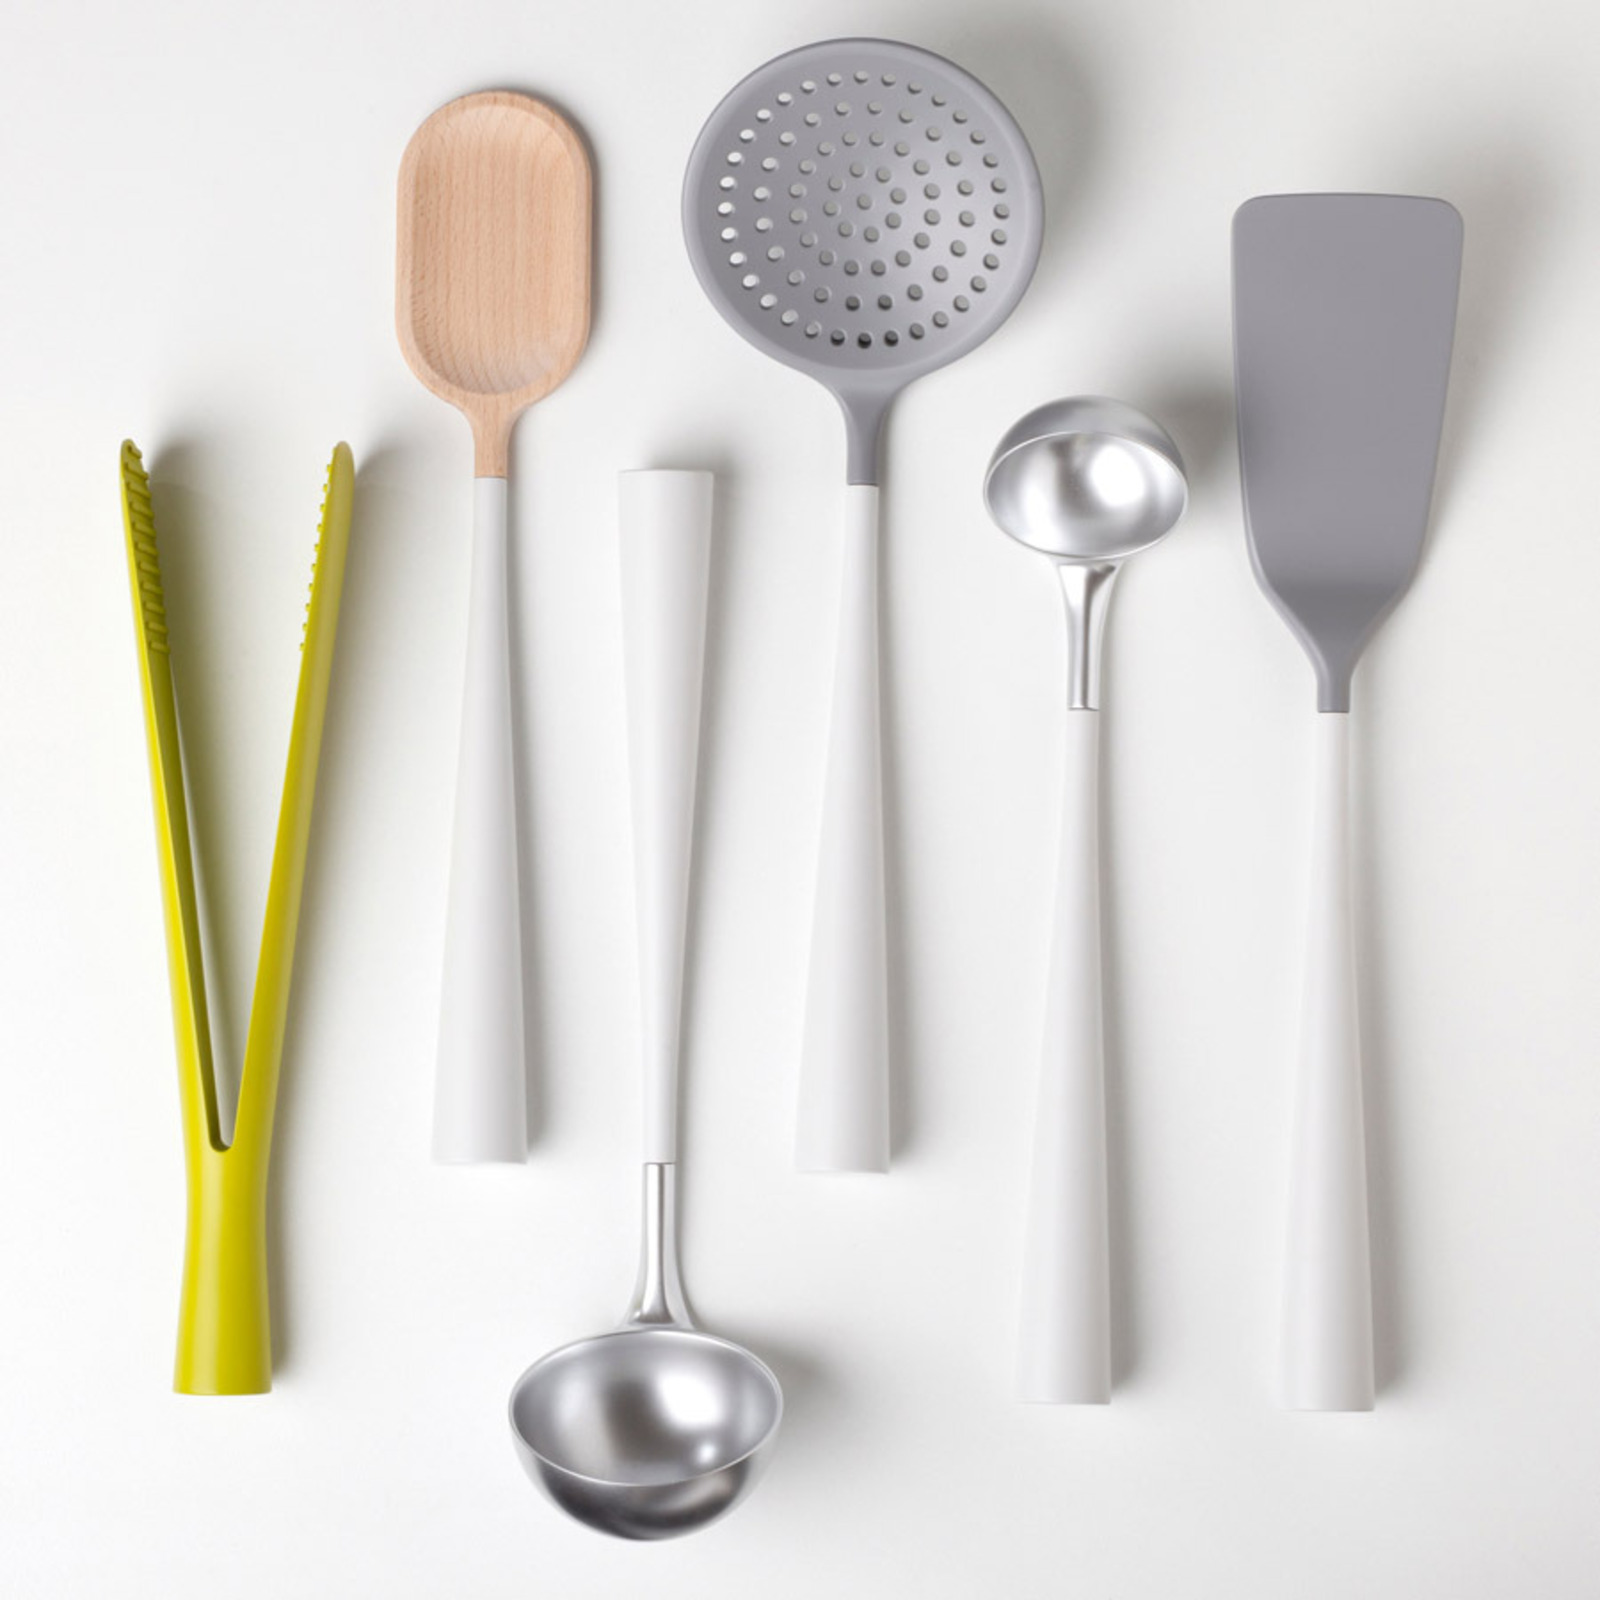 Smool kitchen tools cool hunting for Kitchen design utensils